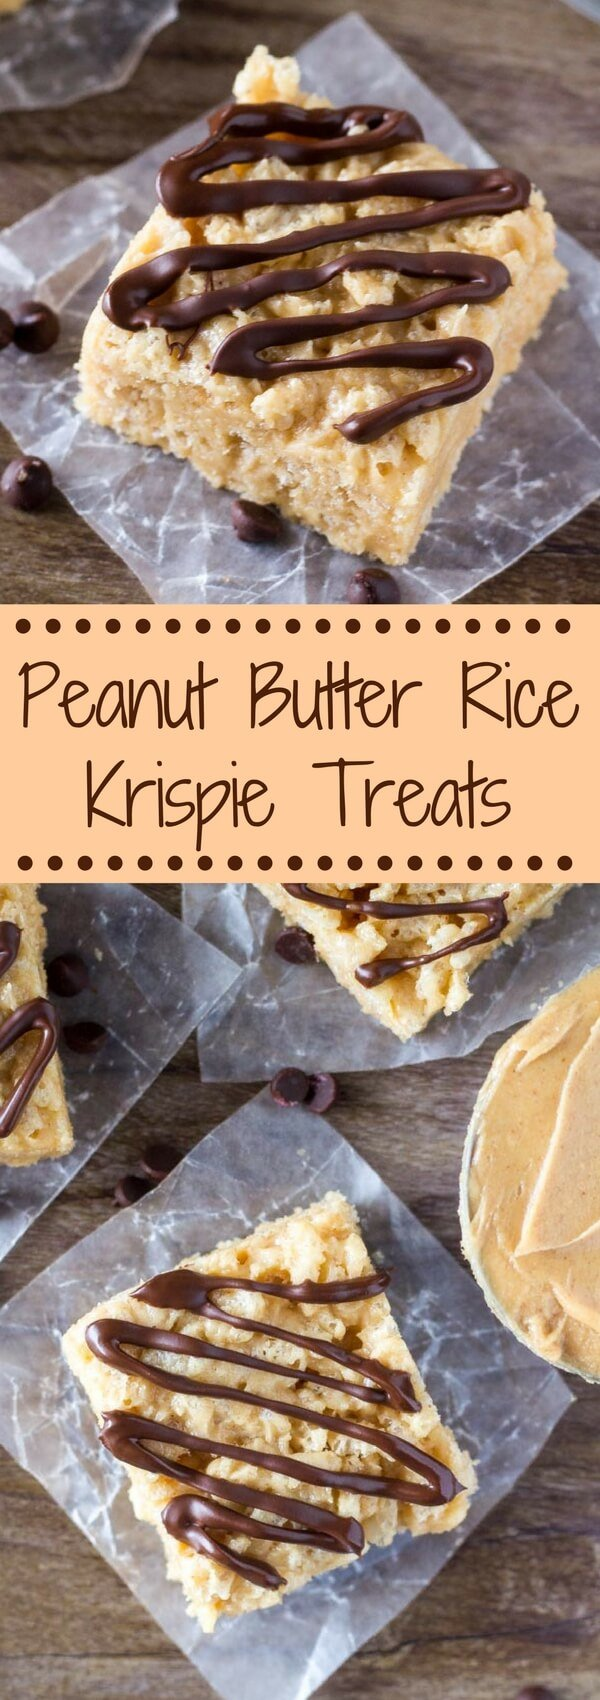 Peanut Butter Rice Krispie Treats are so easy to make, and  the perfect recipe for your chocolate peanut butter cravings. Like a crispy, crunchy, chewy peanut butter cup! #ricekrispies #cerealtreats #peanutbuttercups